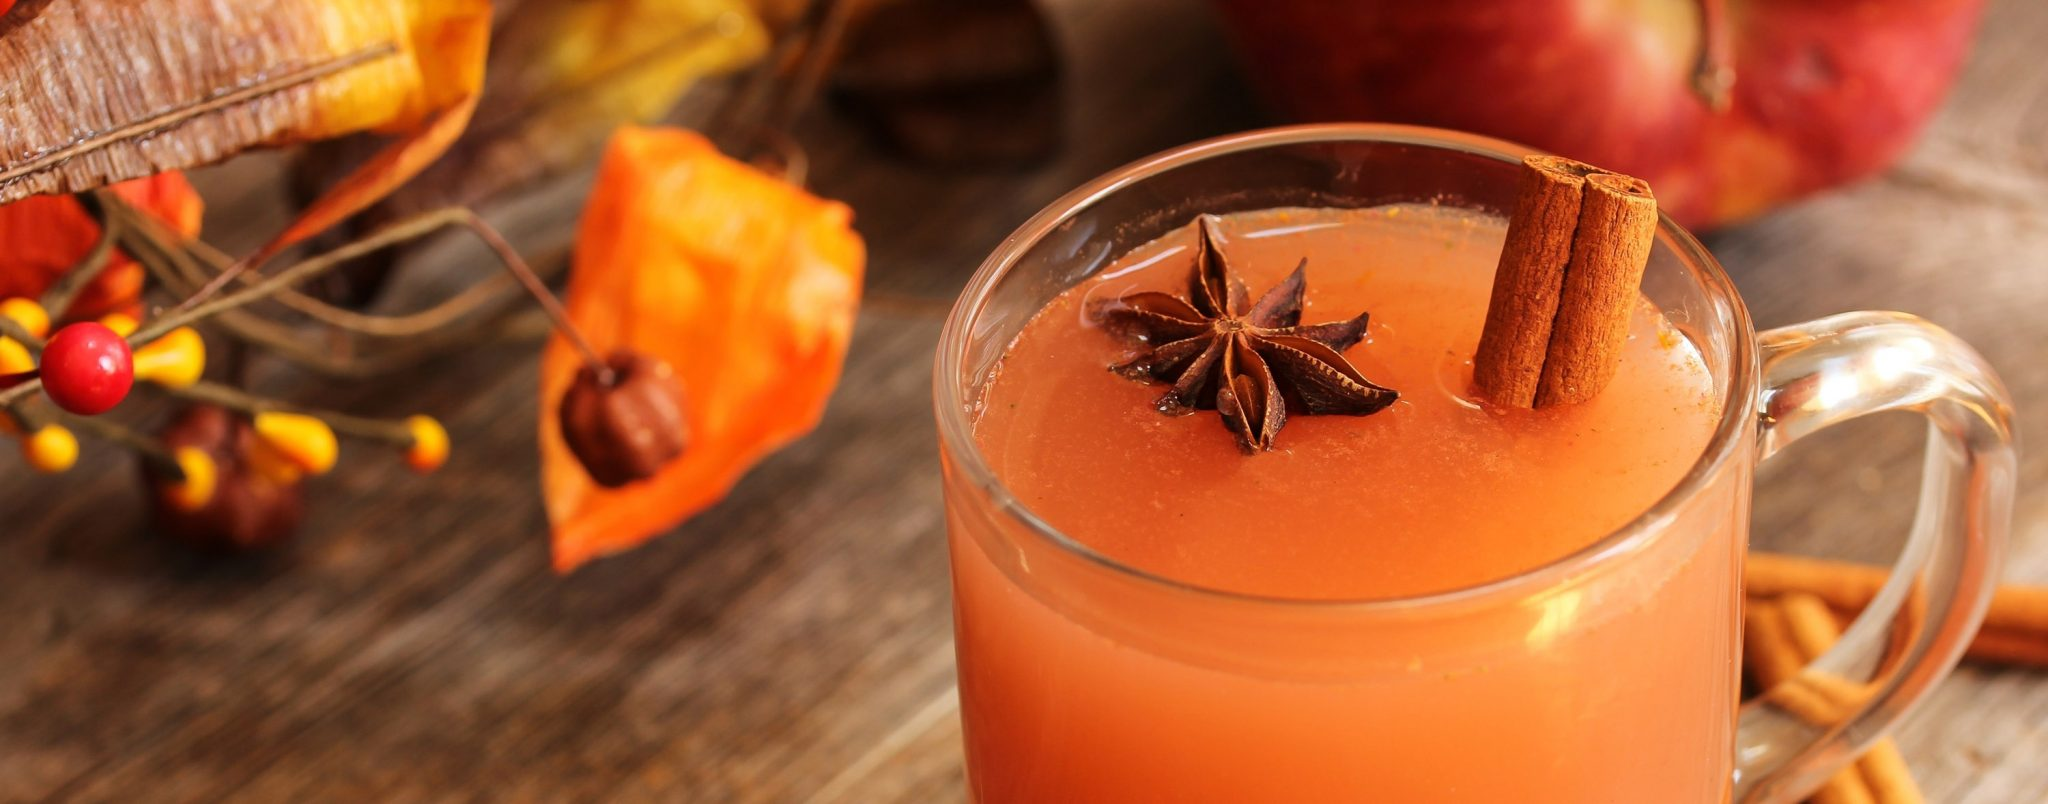 Fall is Finally Here: 4 Seasonal Cocktails that will Warm You Up